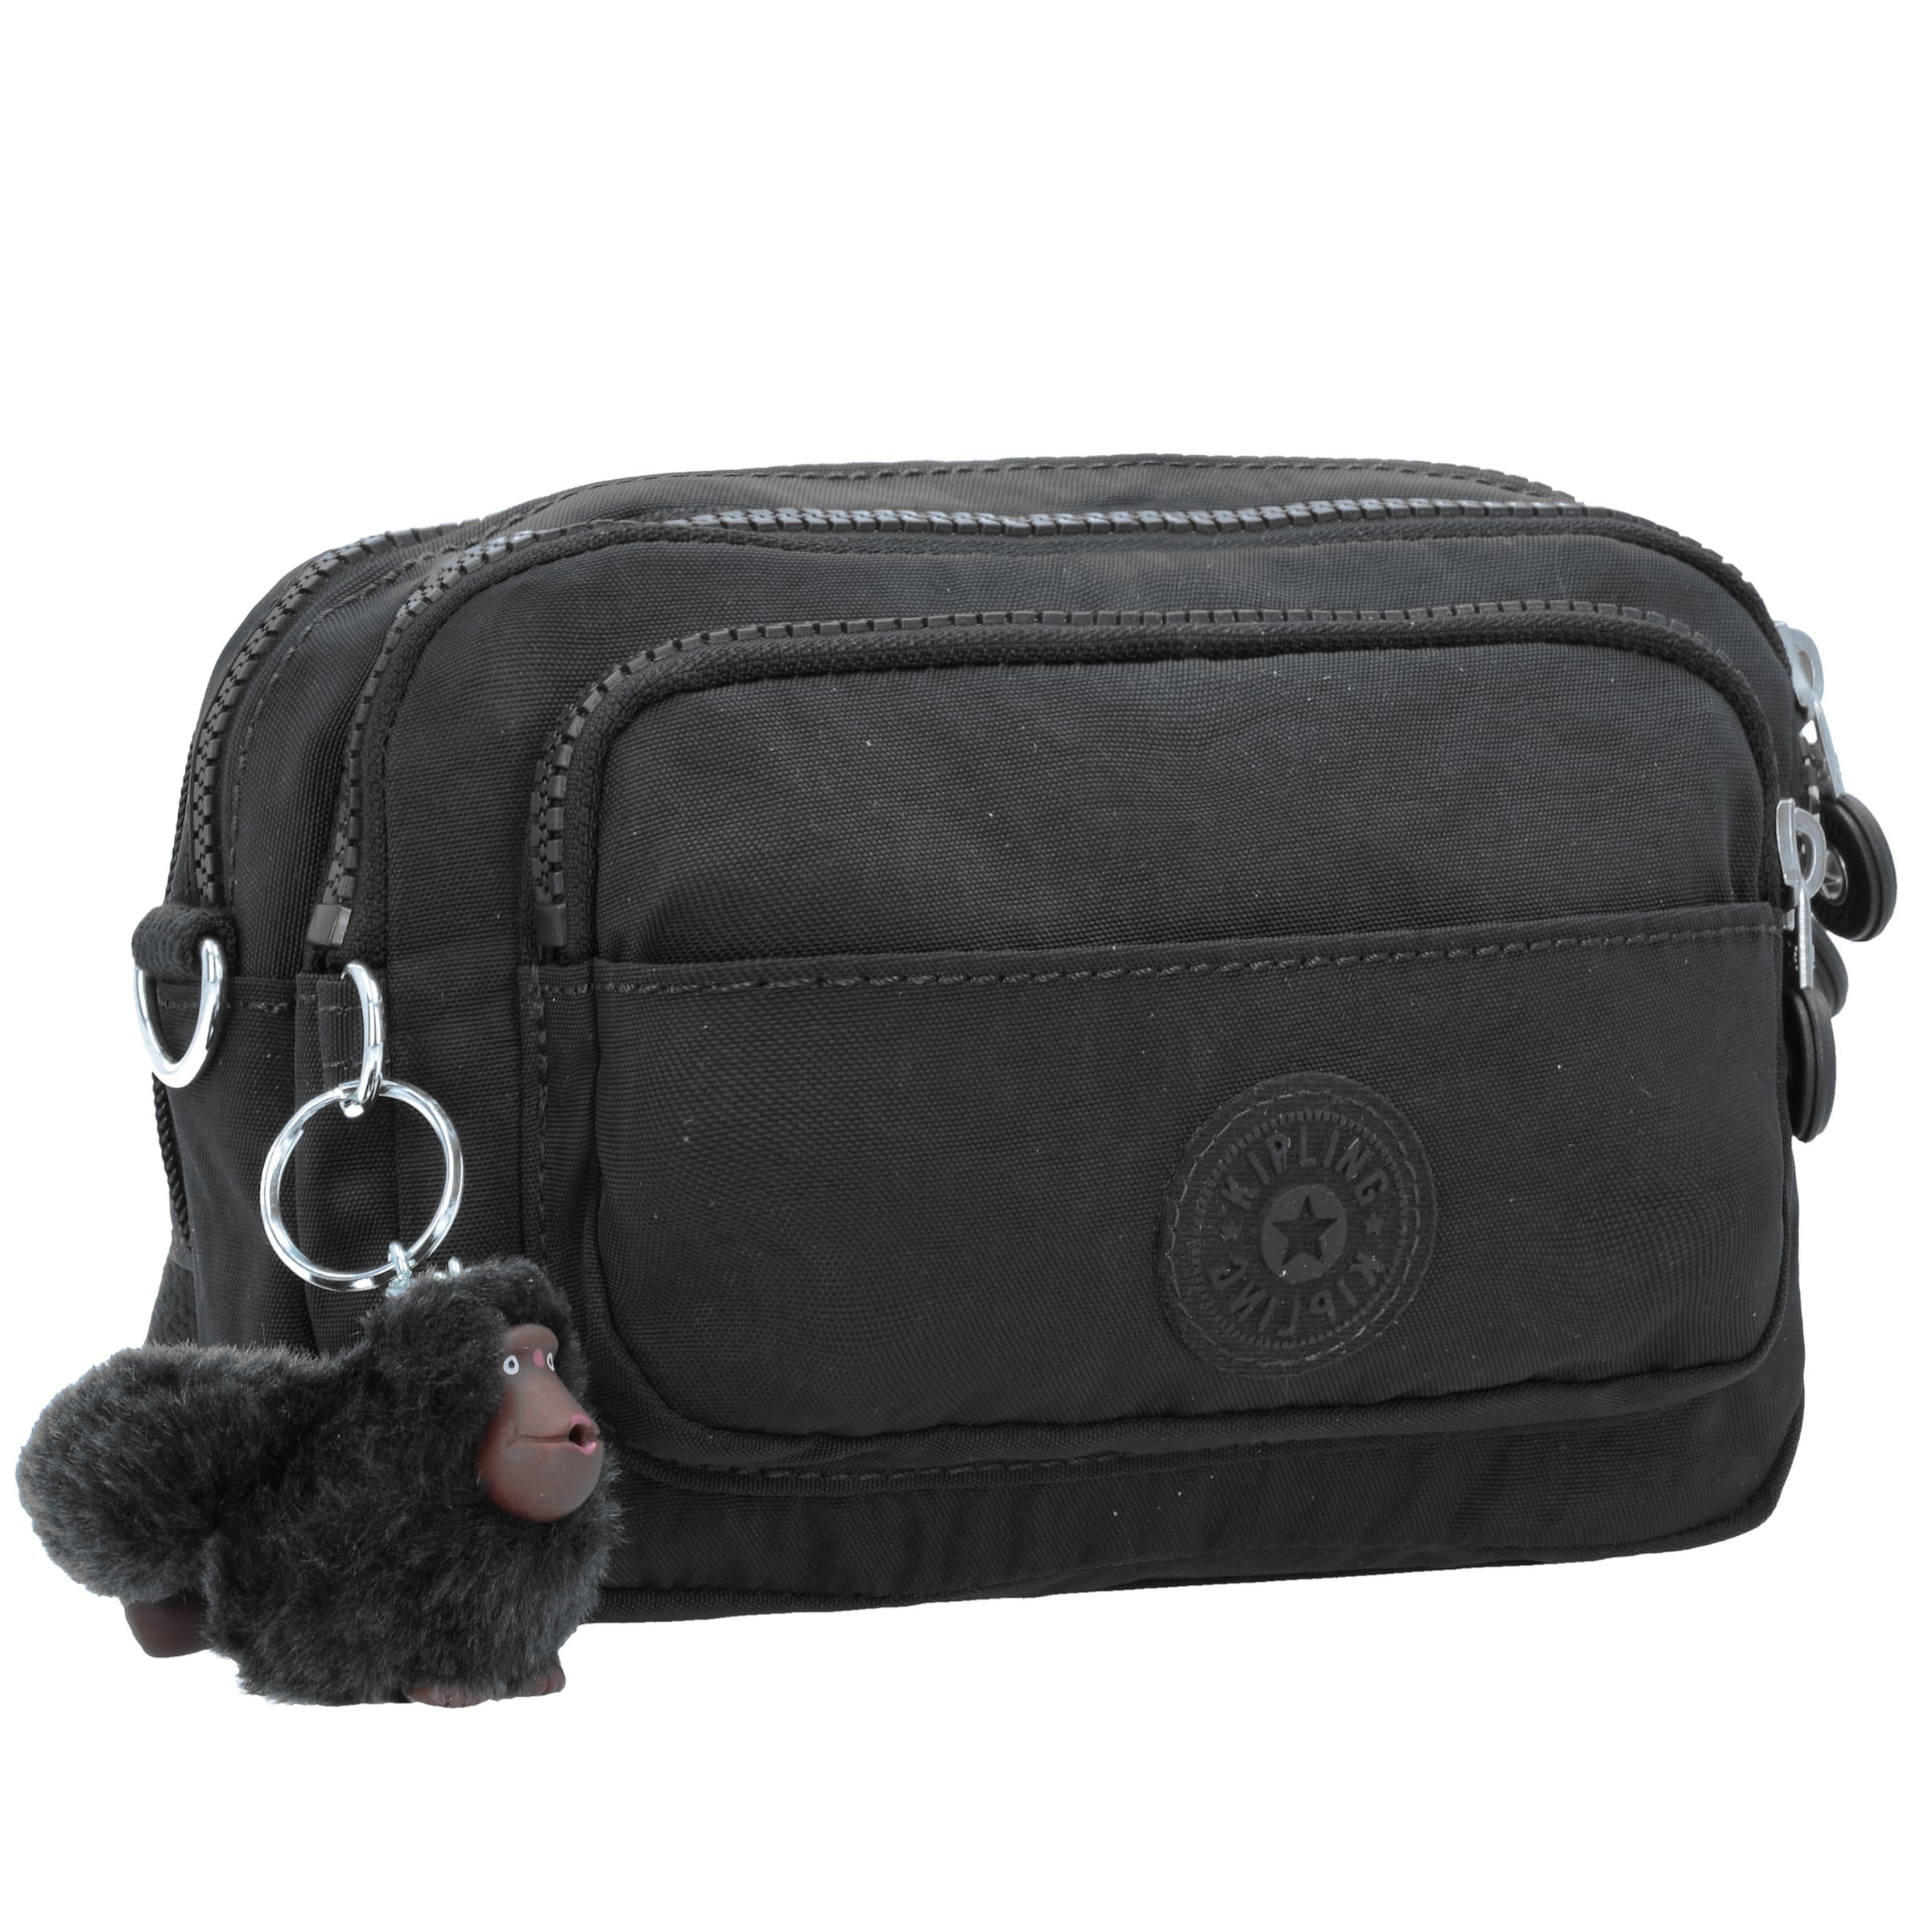 Basic Basic KIPLING G眉rteltasche cm 18 Travel KIPLING Multiple 20 Travel 7qxPaxw